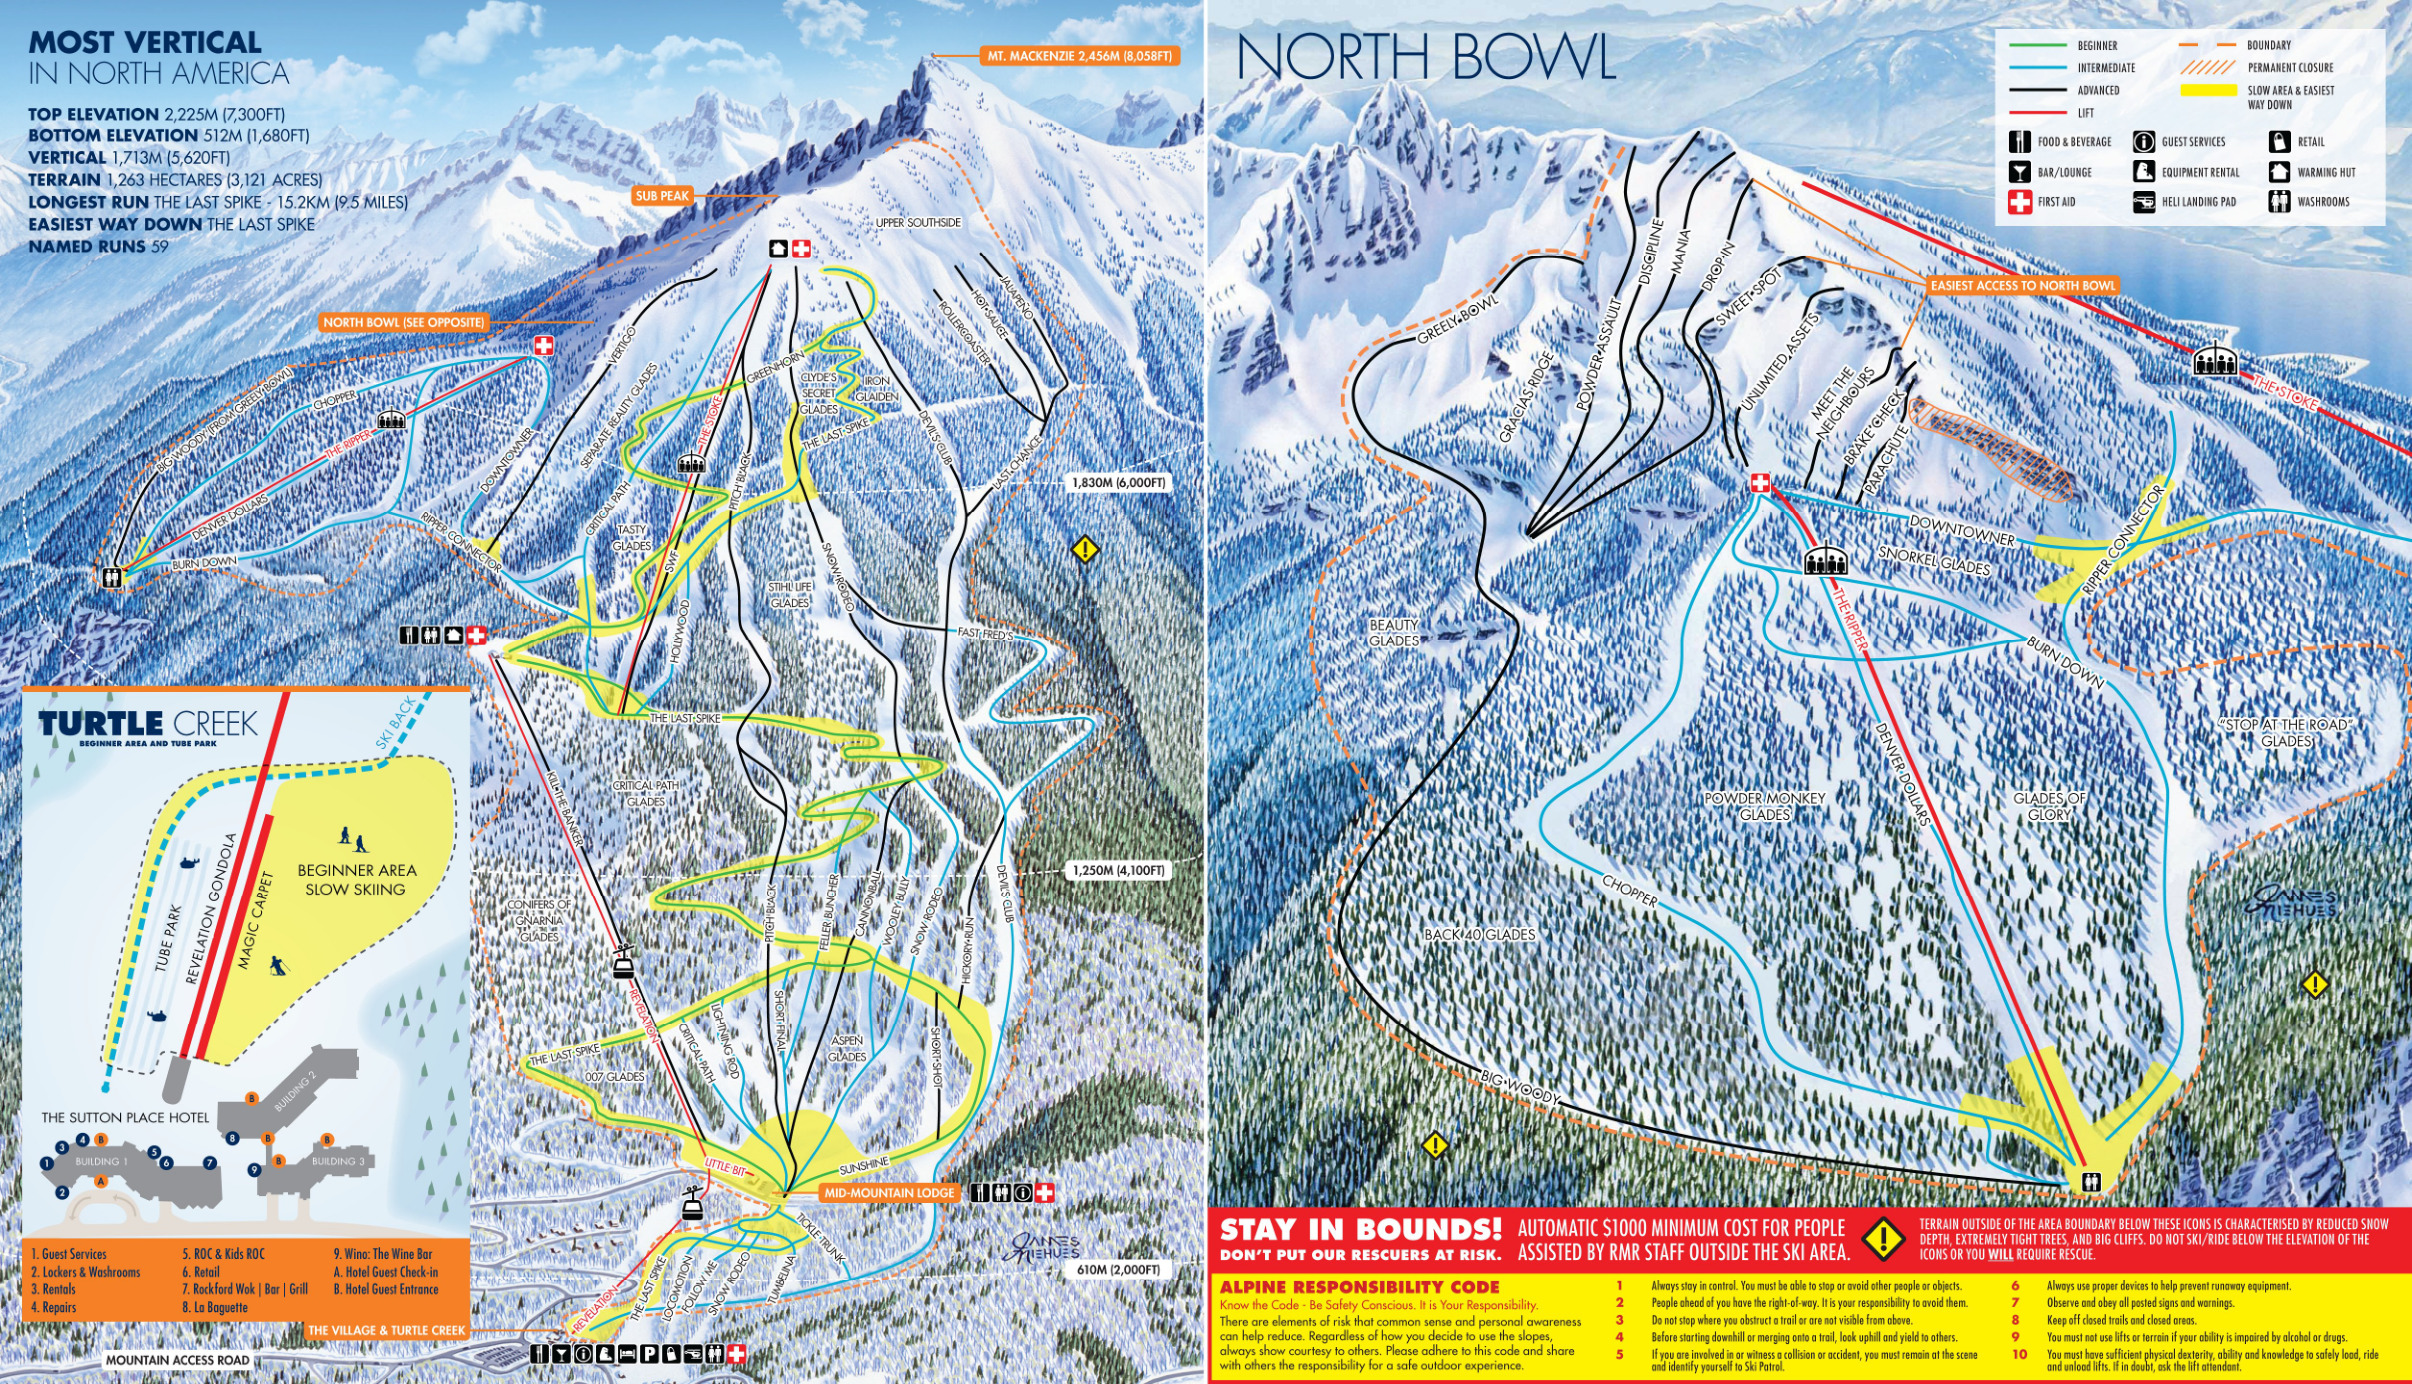 revelstoke mountain resort (powder springs) - skimap